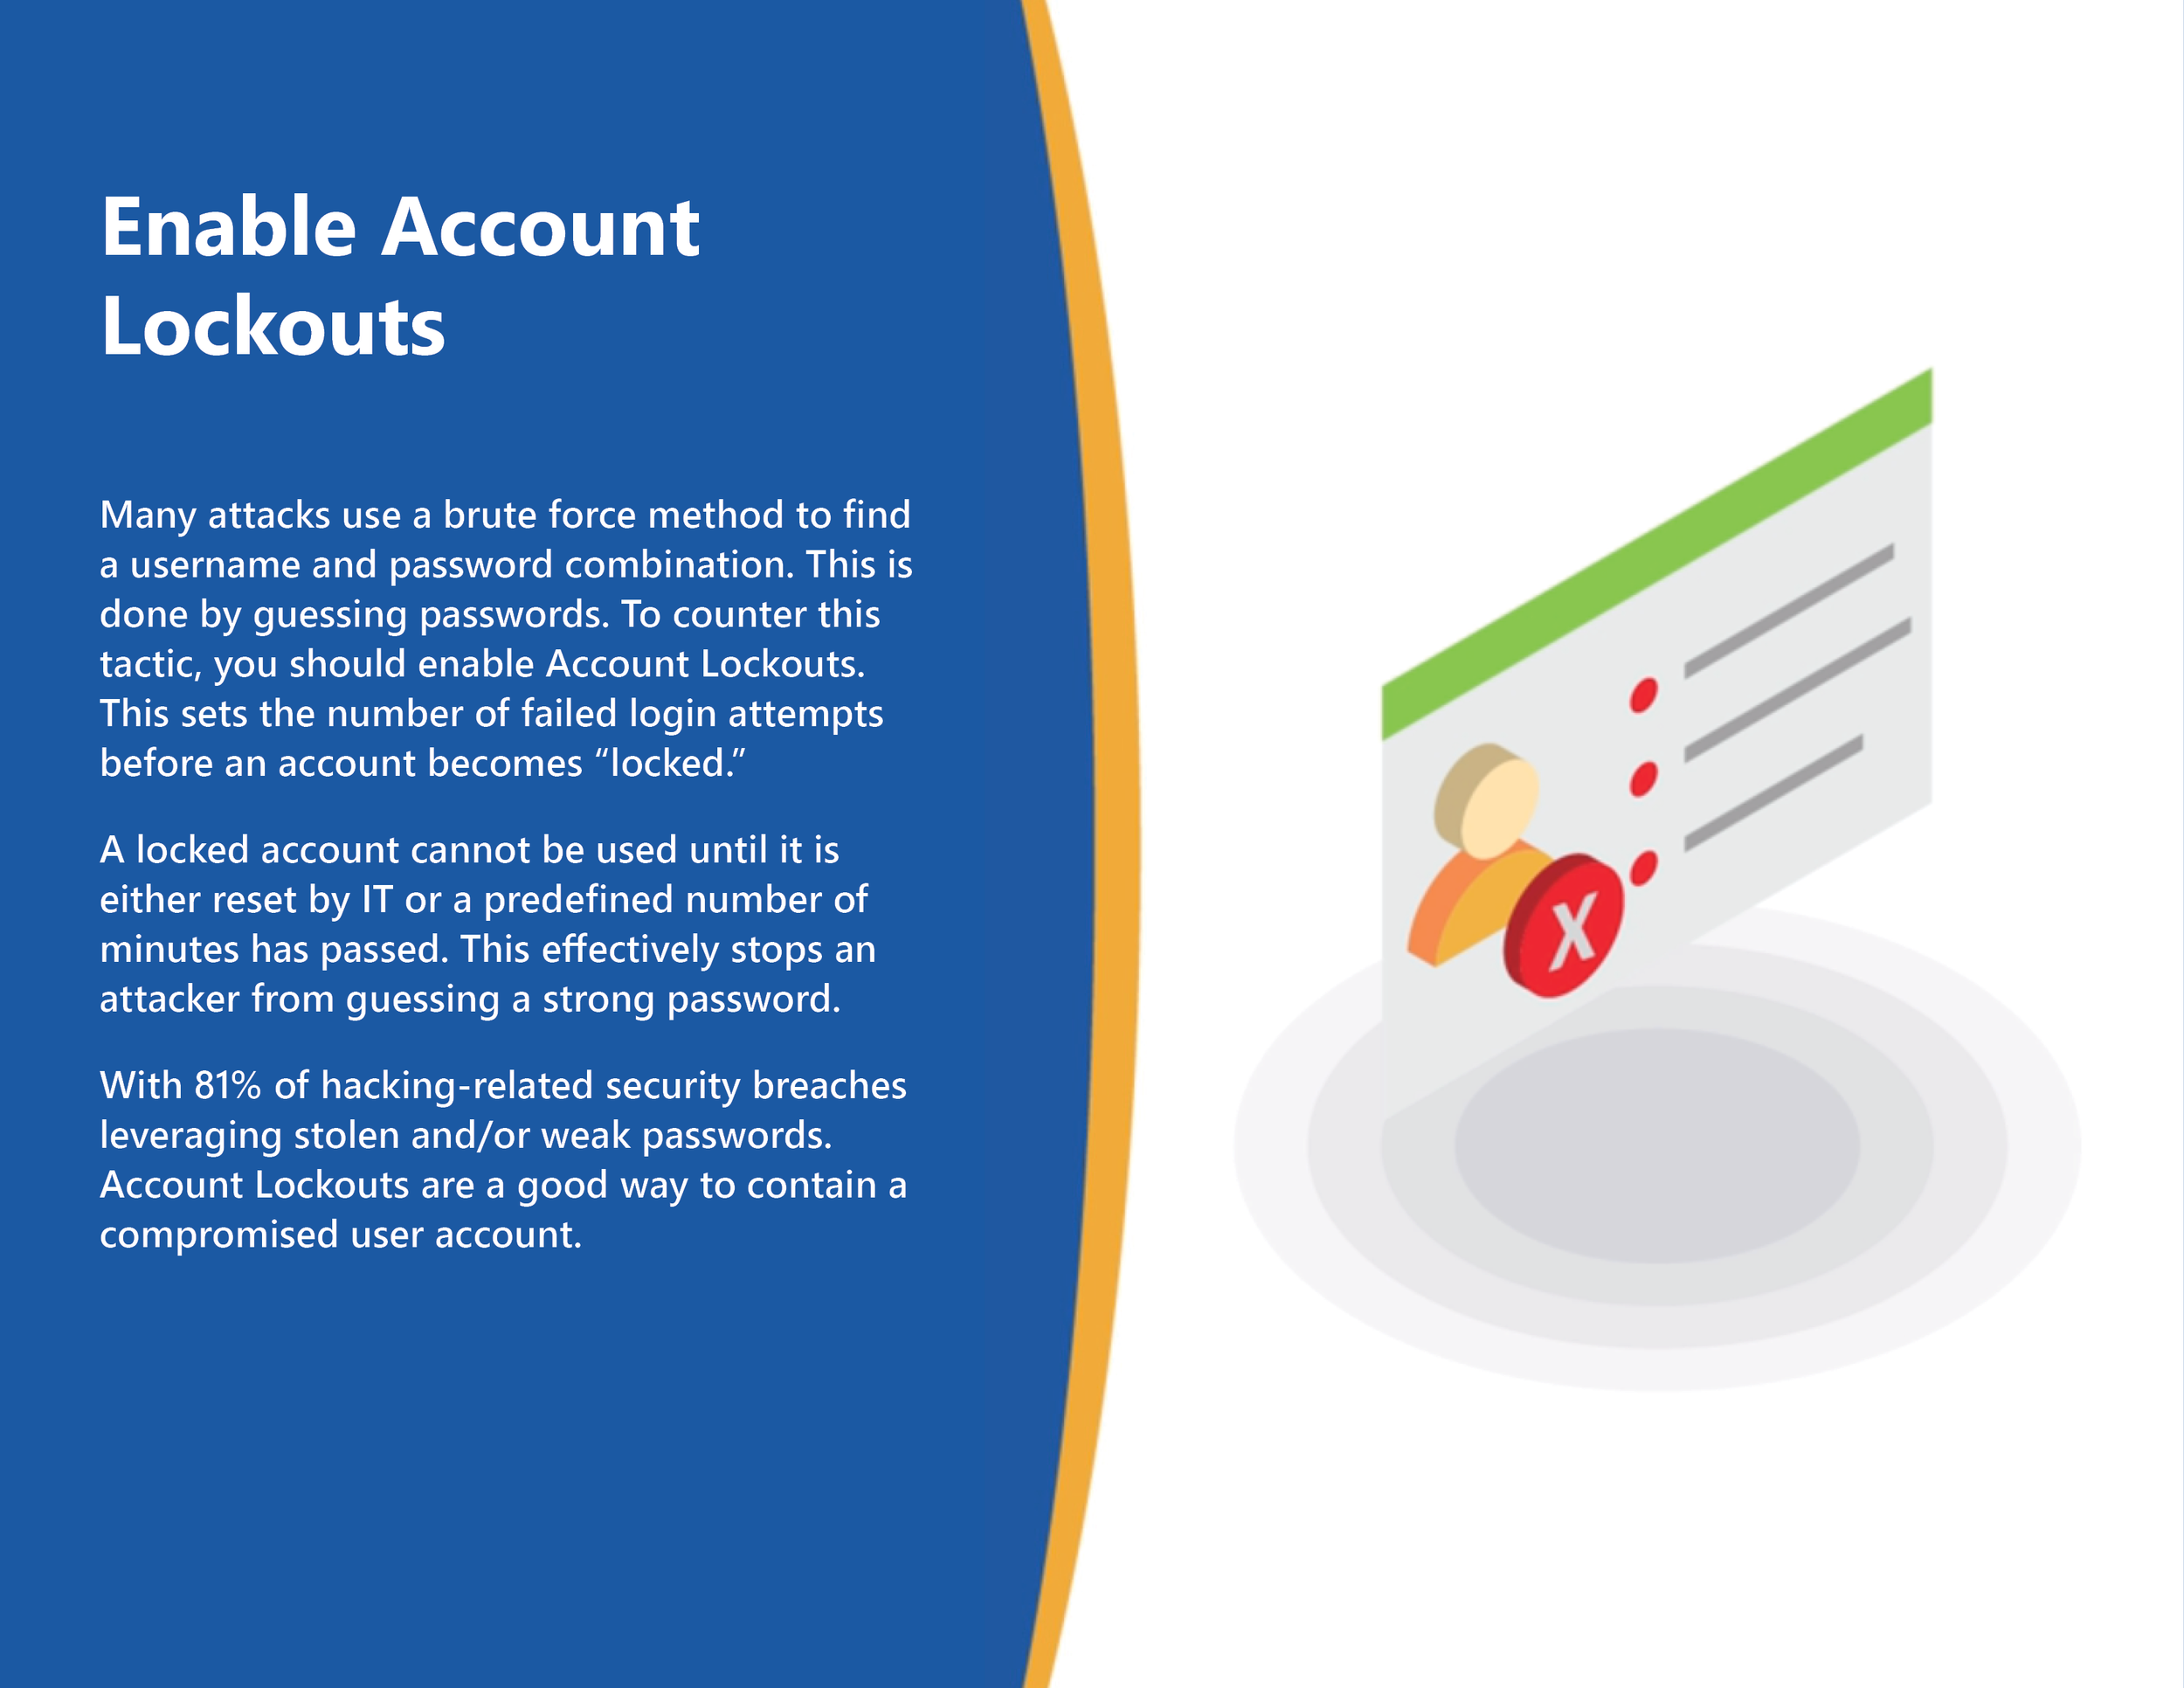 Enable Account Lockouts